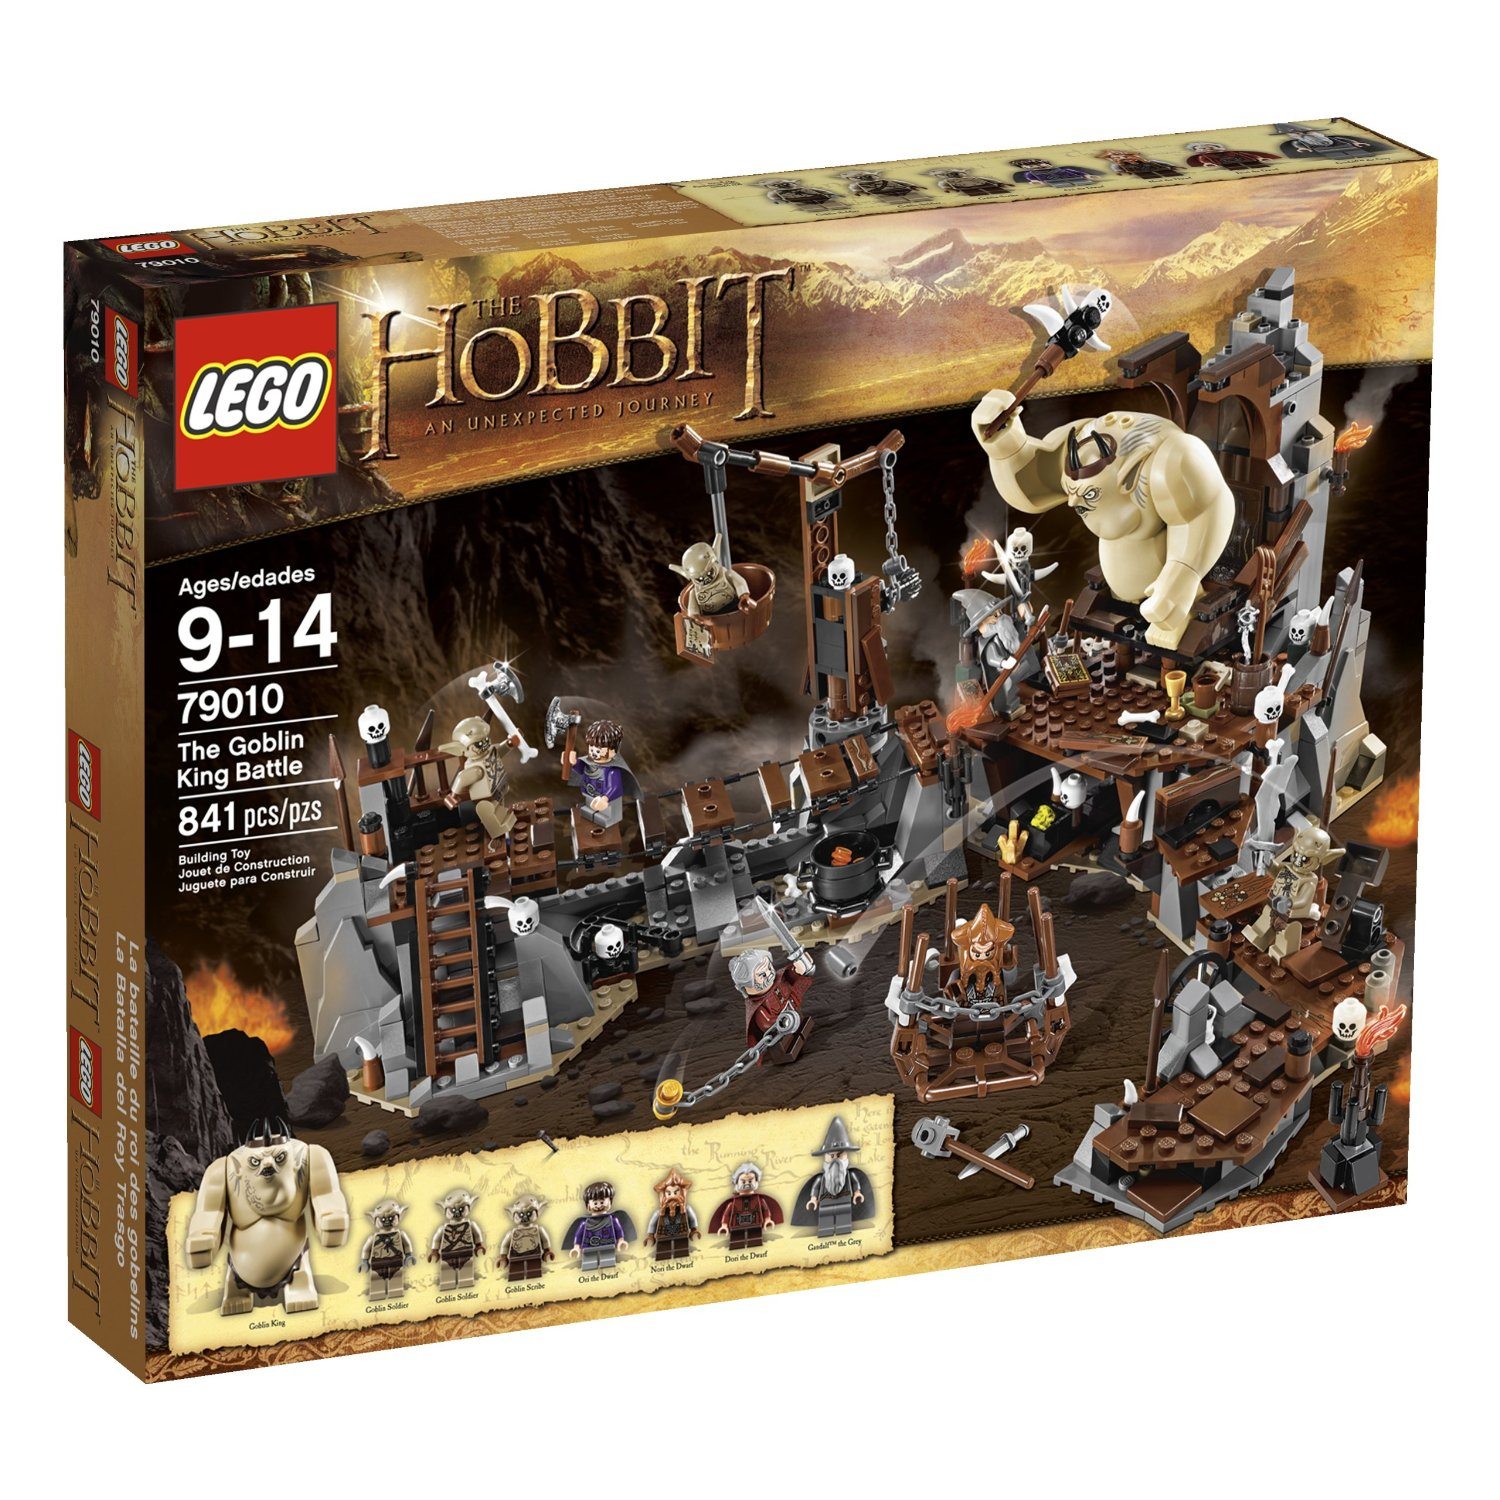 LEGO The Hobbit 79010 The Goblin King Battle